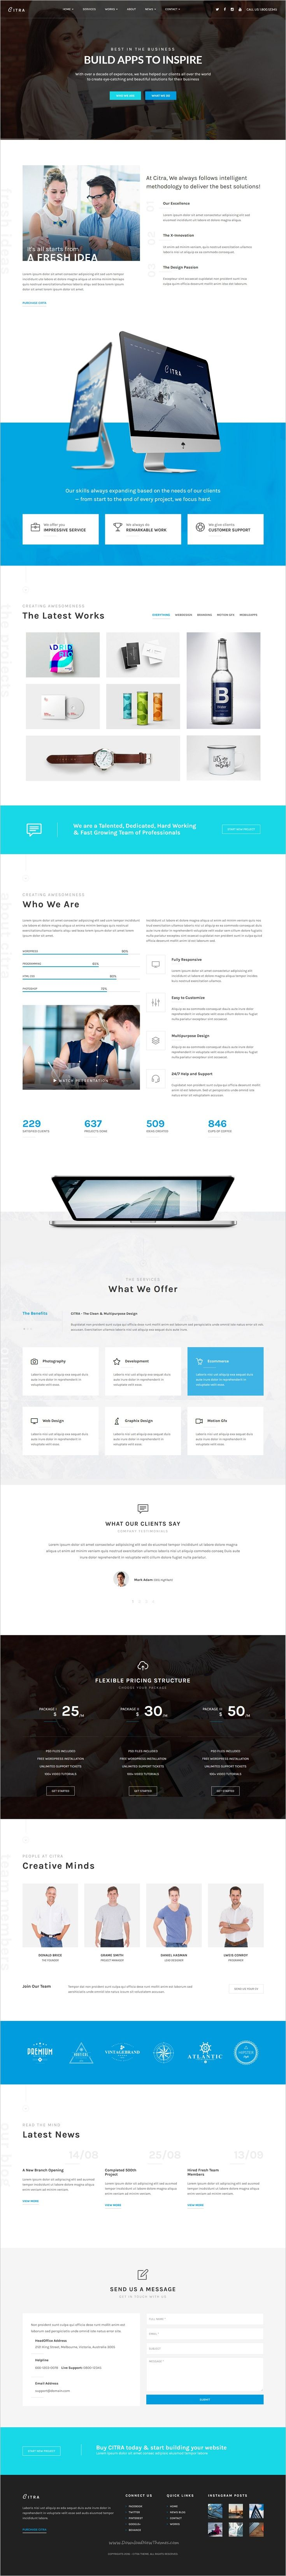 CITRA is a modern, unique and responsive Bootstrap #HTML template for corporate, #design agency or #freelancers portfolio websites download now➩ https://themeforest.net/item/citra-html-responsive-multipurpose-template/18948654?ref=Datasata